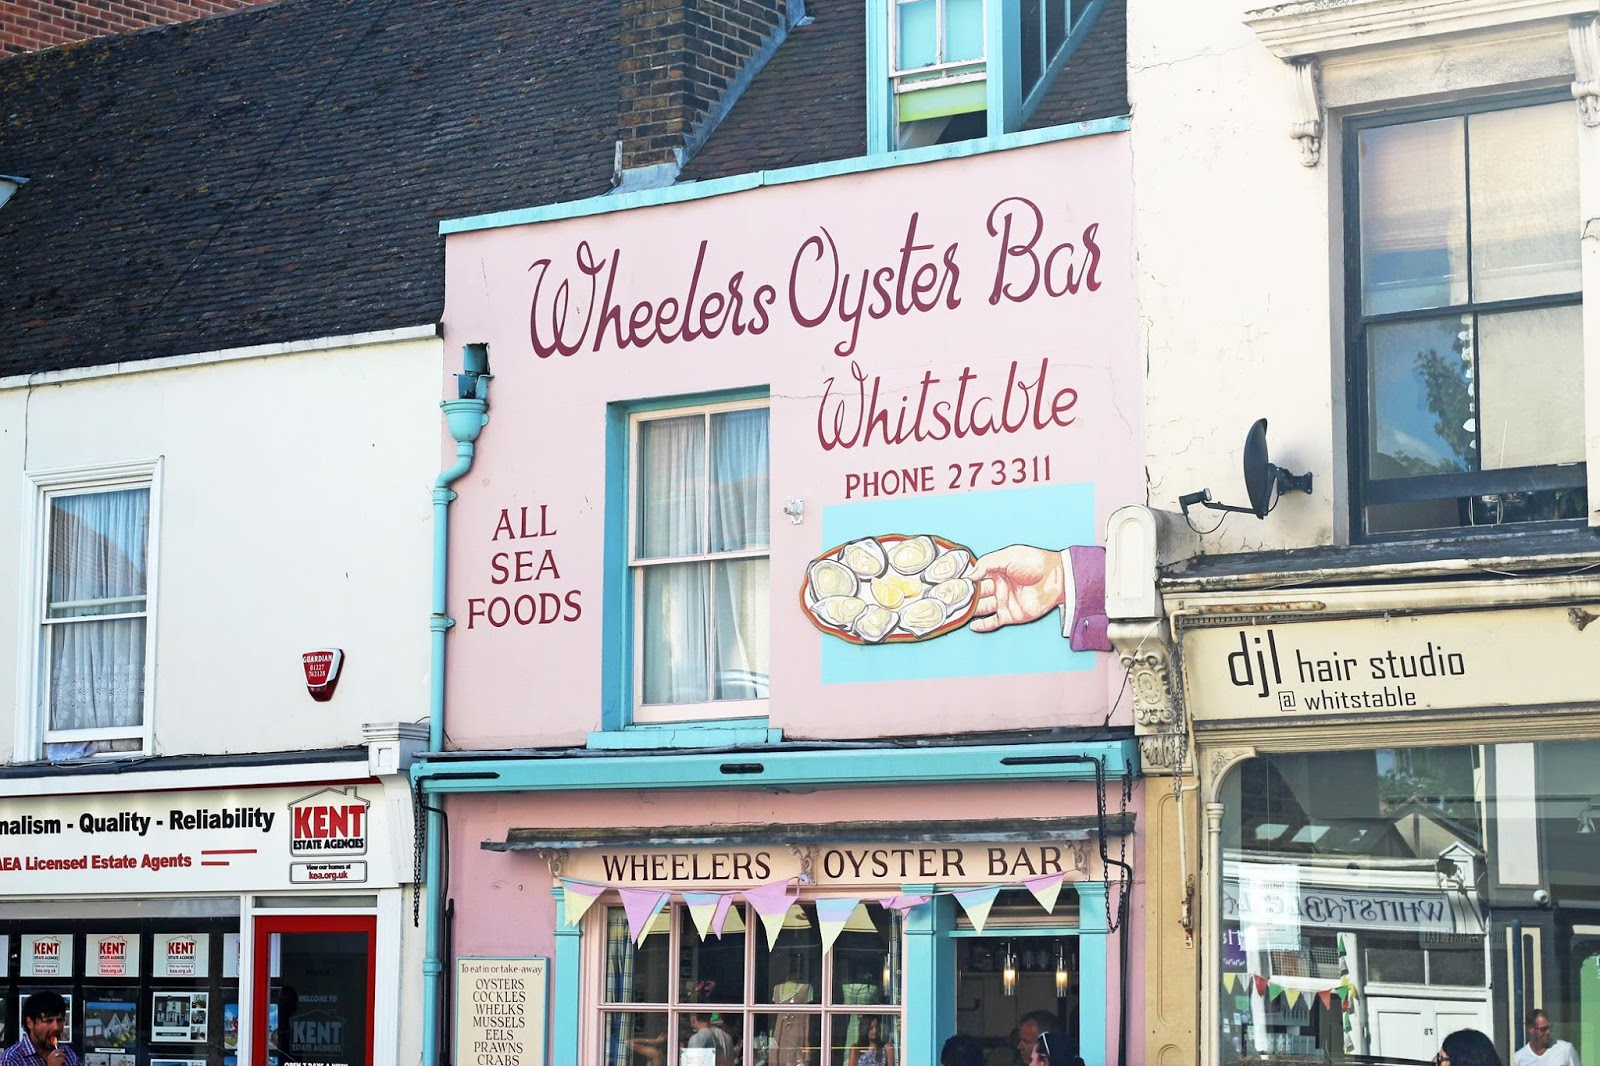 whitstable, whitstable uk, whitstable beach, visit whitstable, wheelers oyster bar whitstable